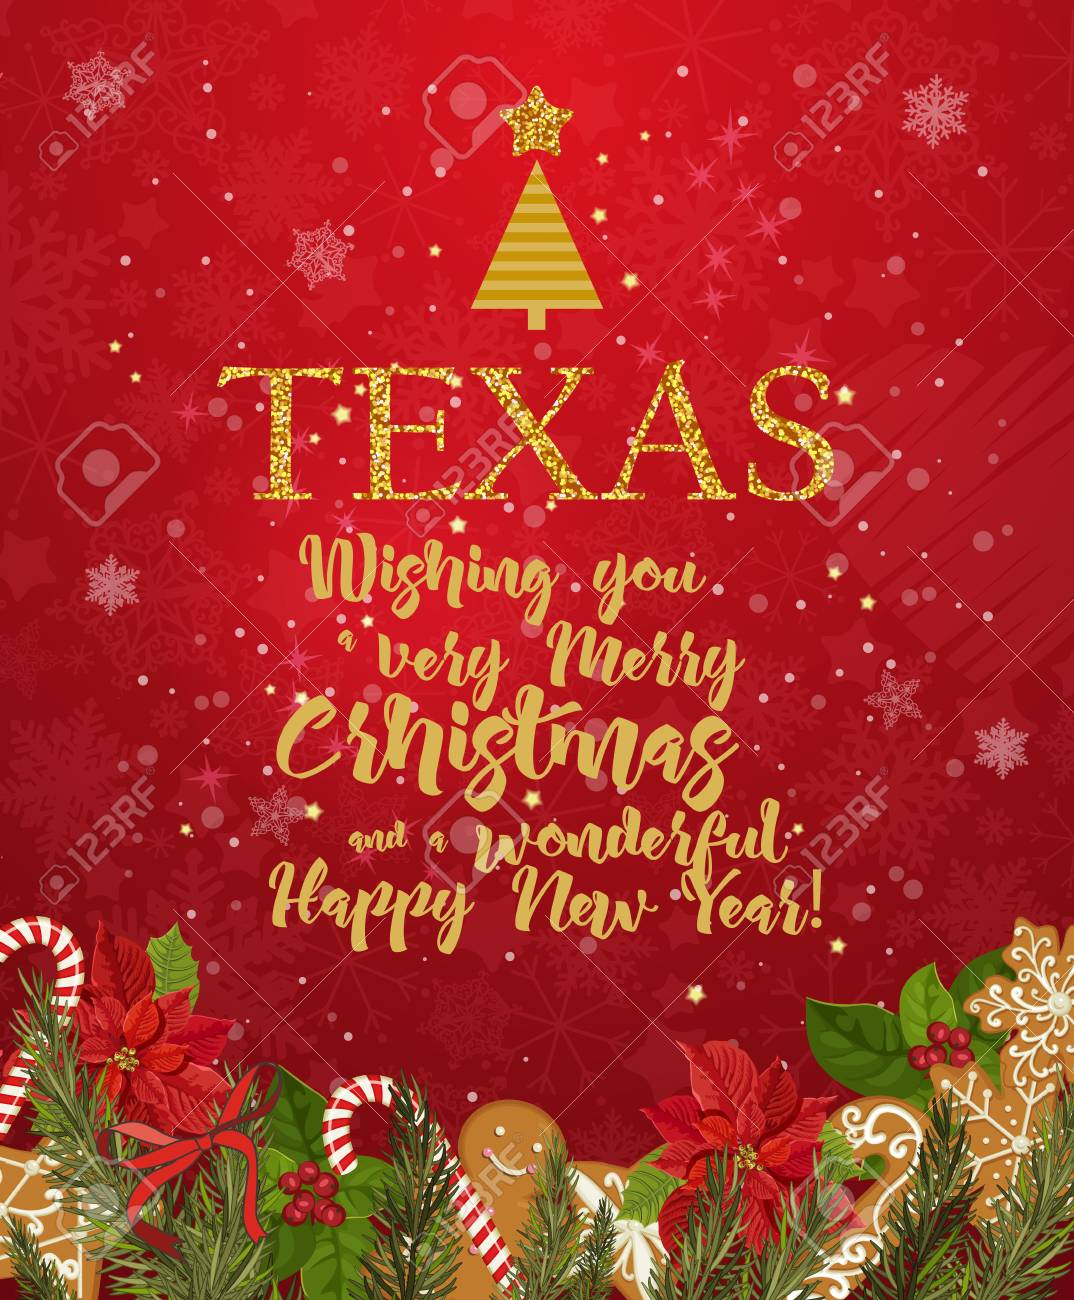 texas merry christmas and a happy new year greeting vector card on red background with snowflakes